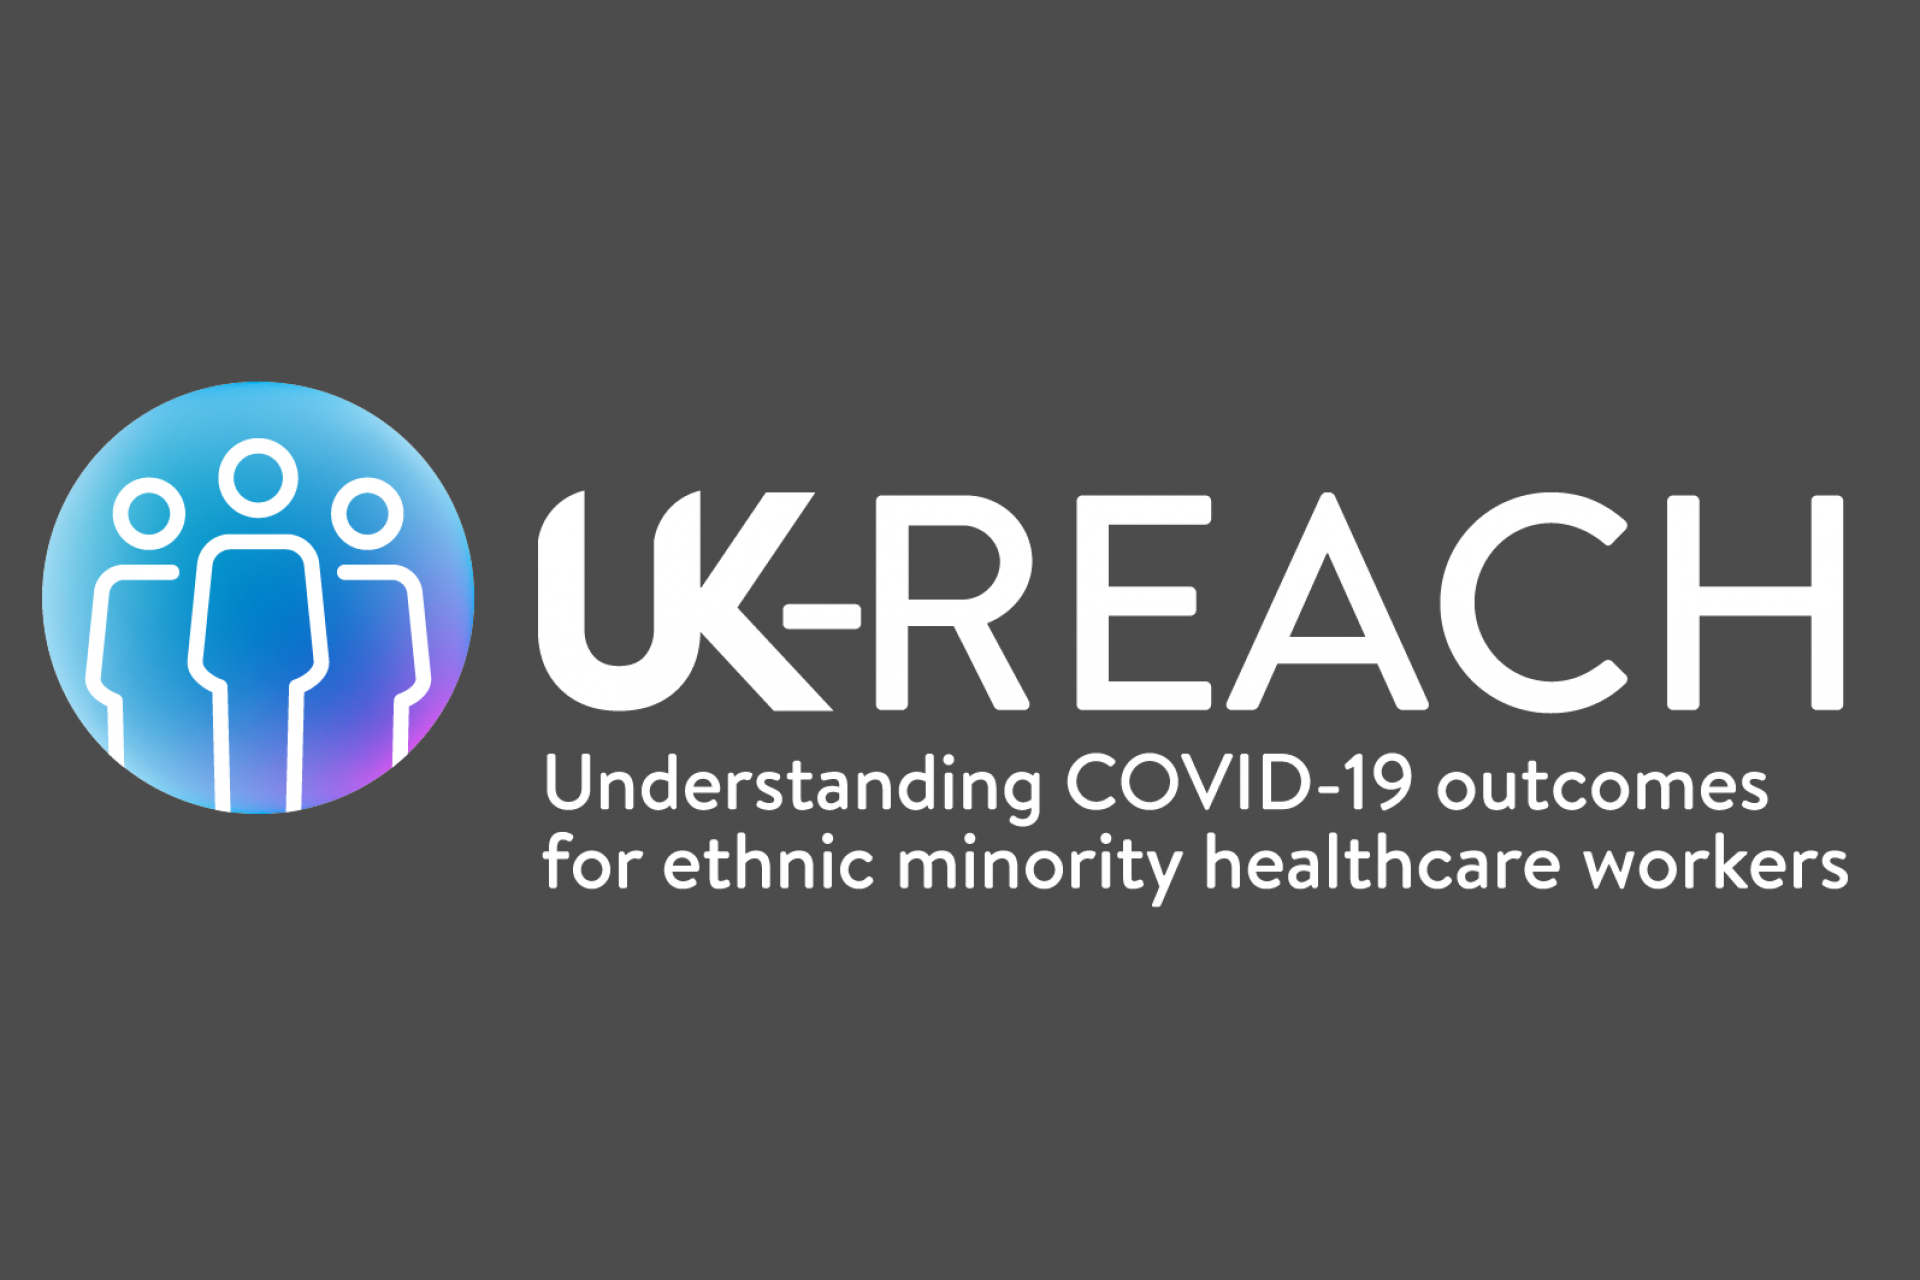 UK-REACH: Understanding COVID-19 outcomes for ethnic minority healthcare workers